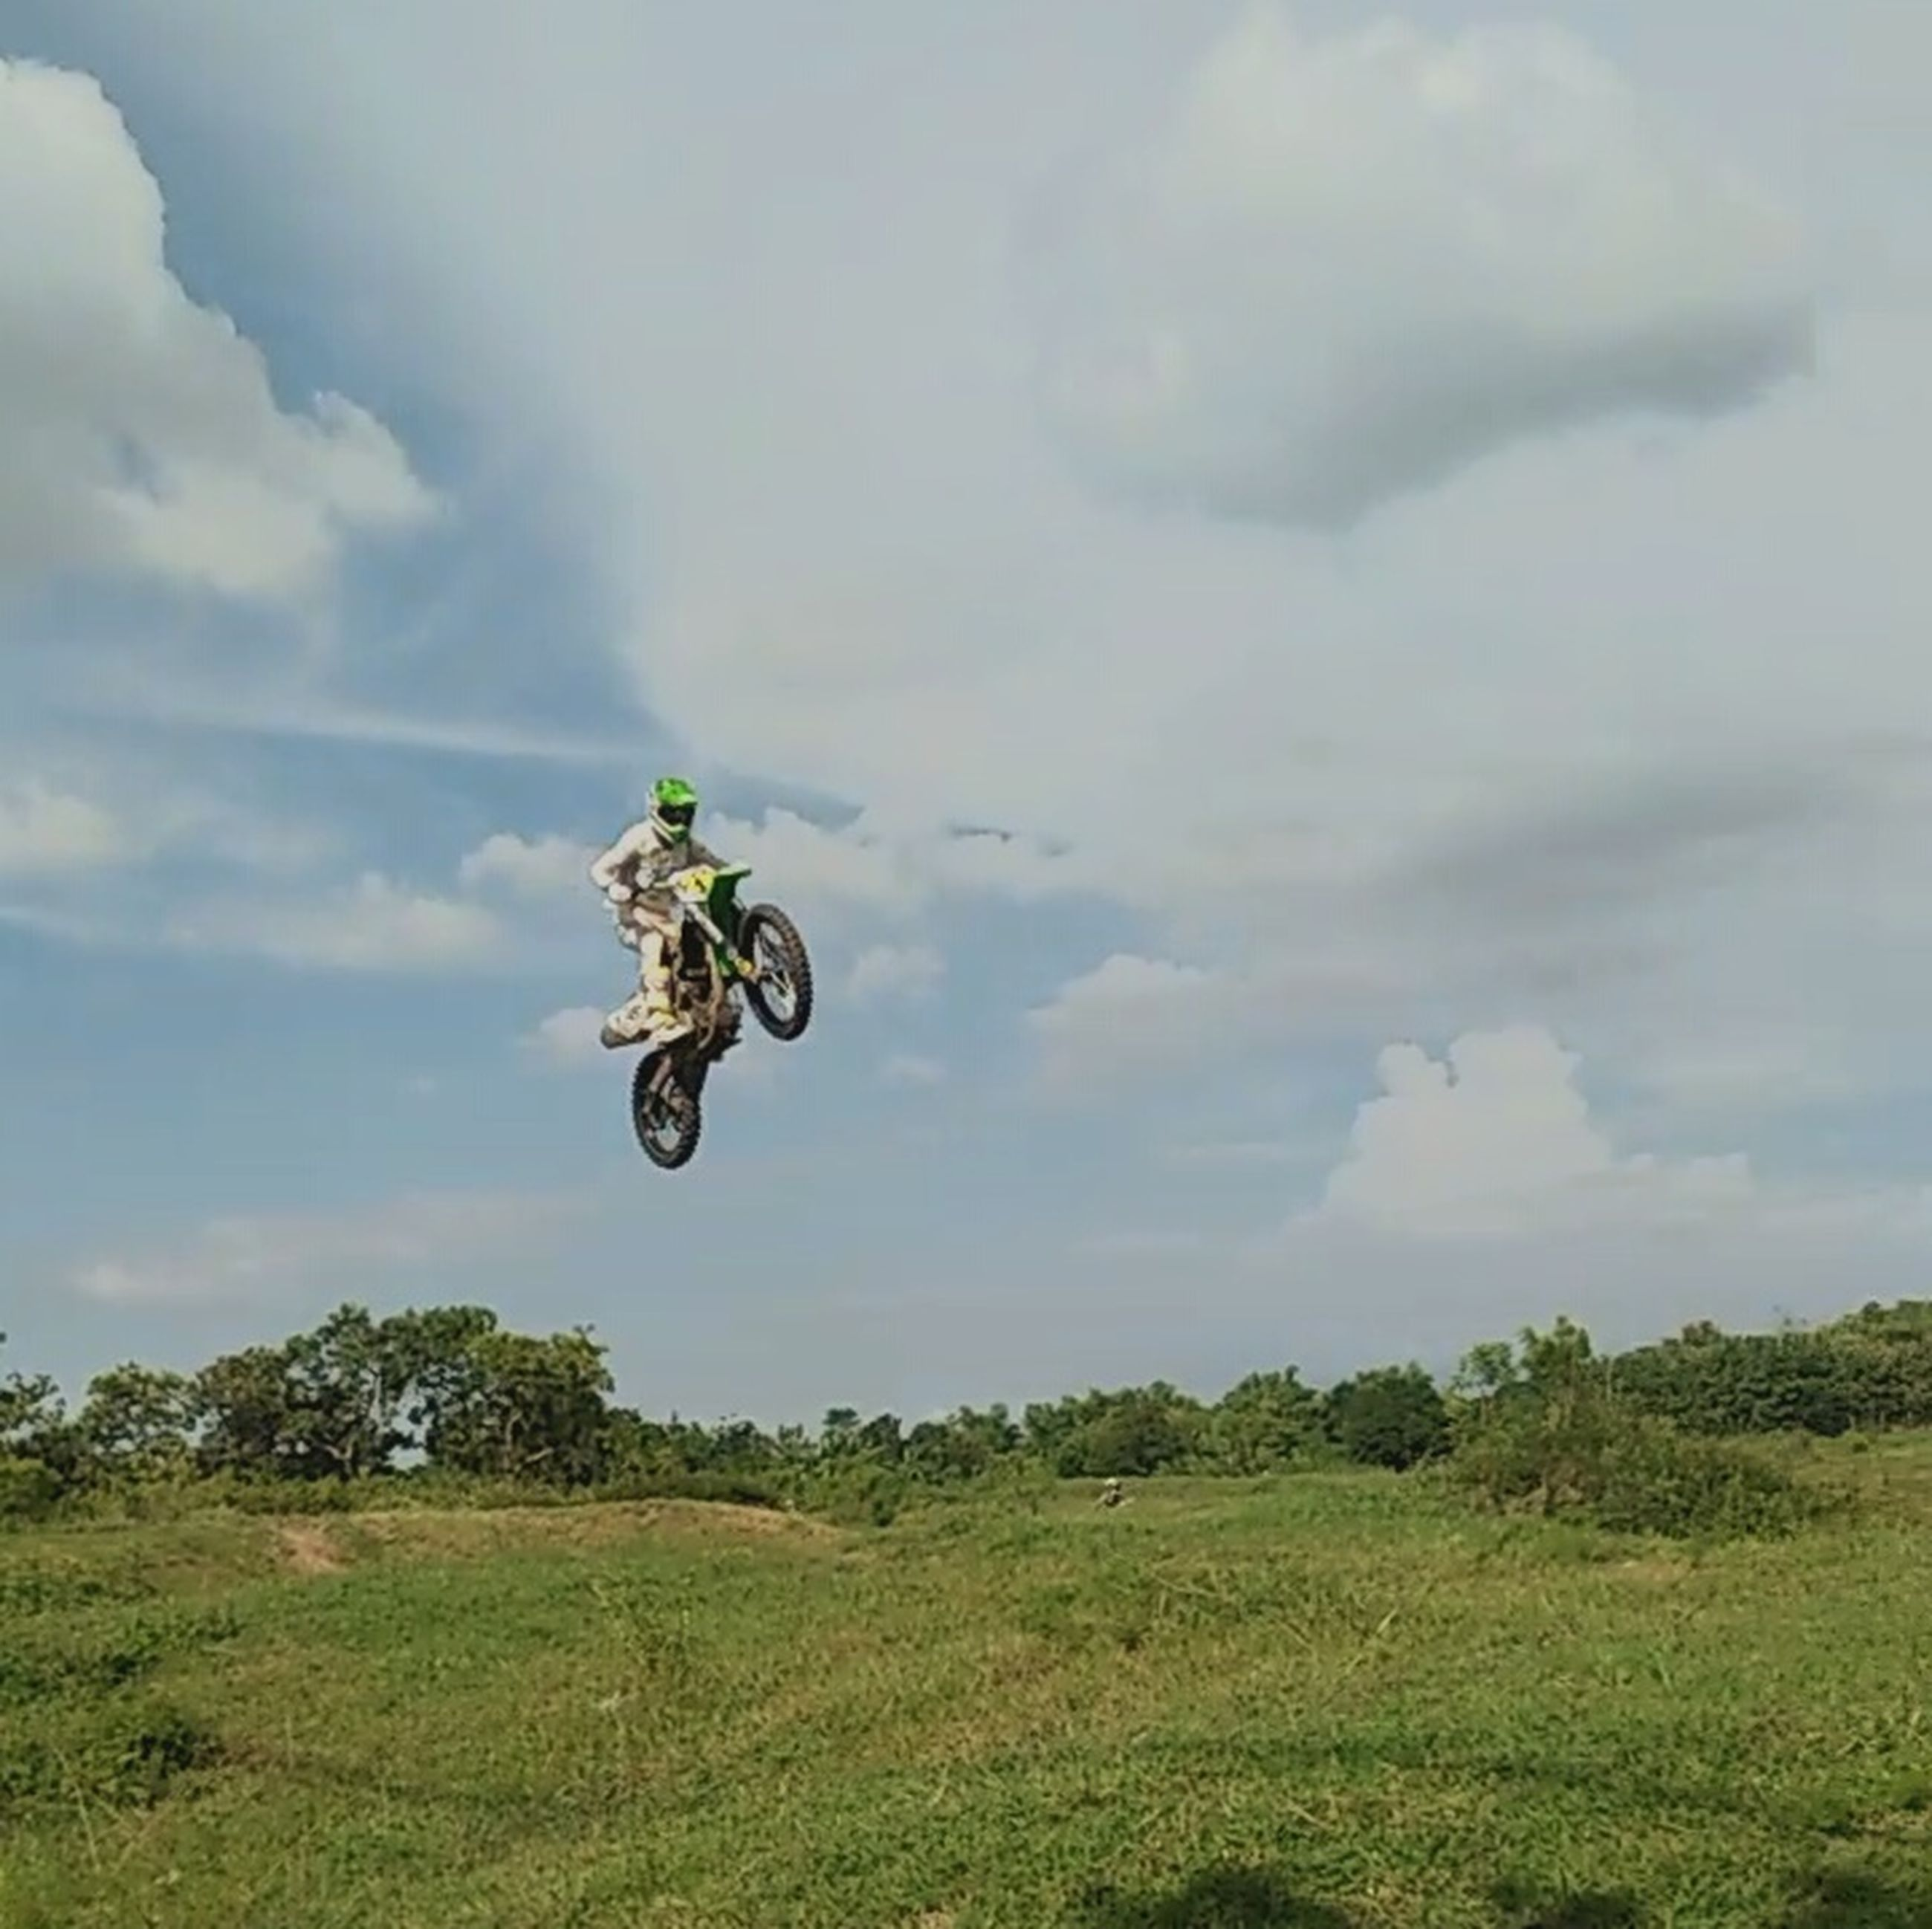 mid-air, cloud - sky, skill, low angle view, sport, full length, outdoors, sky, one person, motocross, leisure activity, stunt, headwear, extreme sports, tree, day, people, competitive sport, motorsport, drone, adult